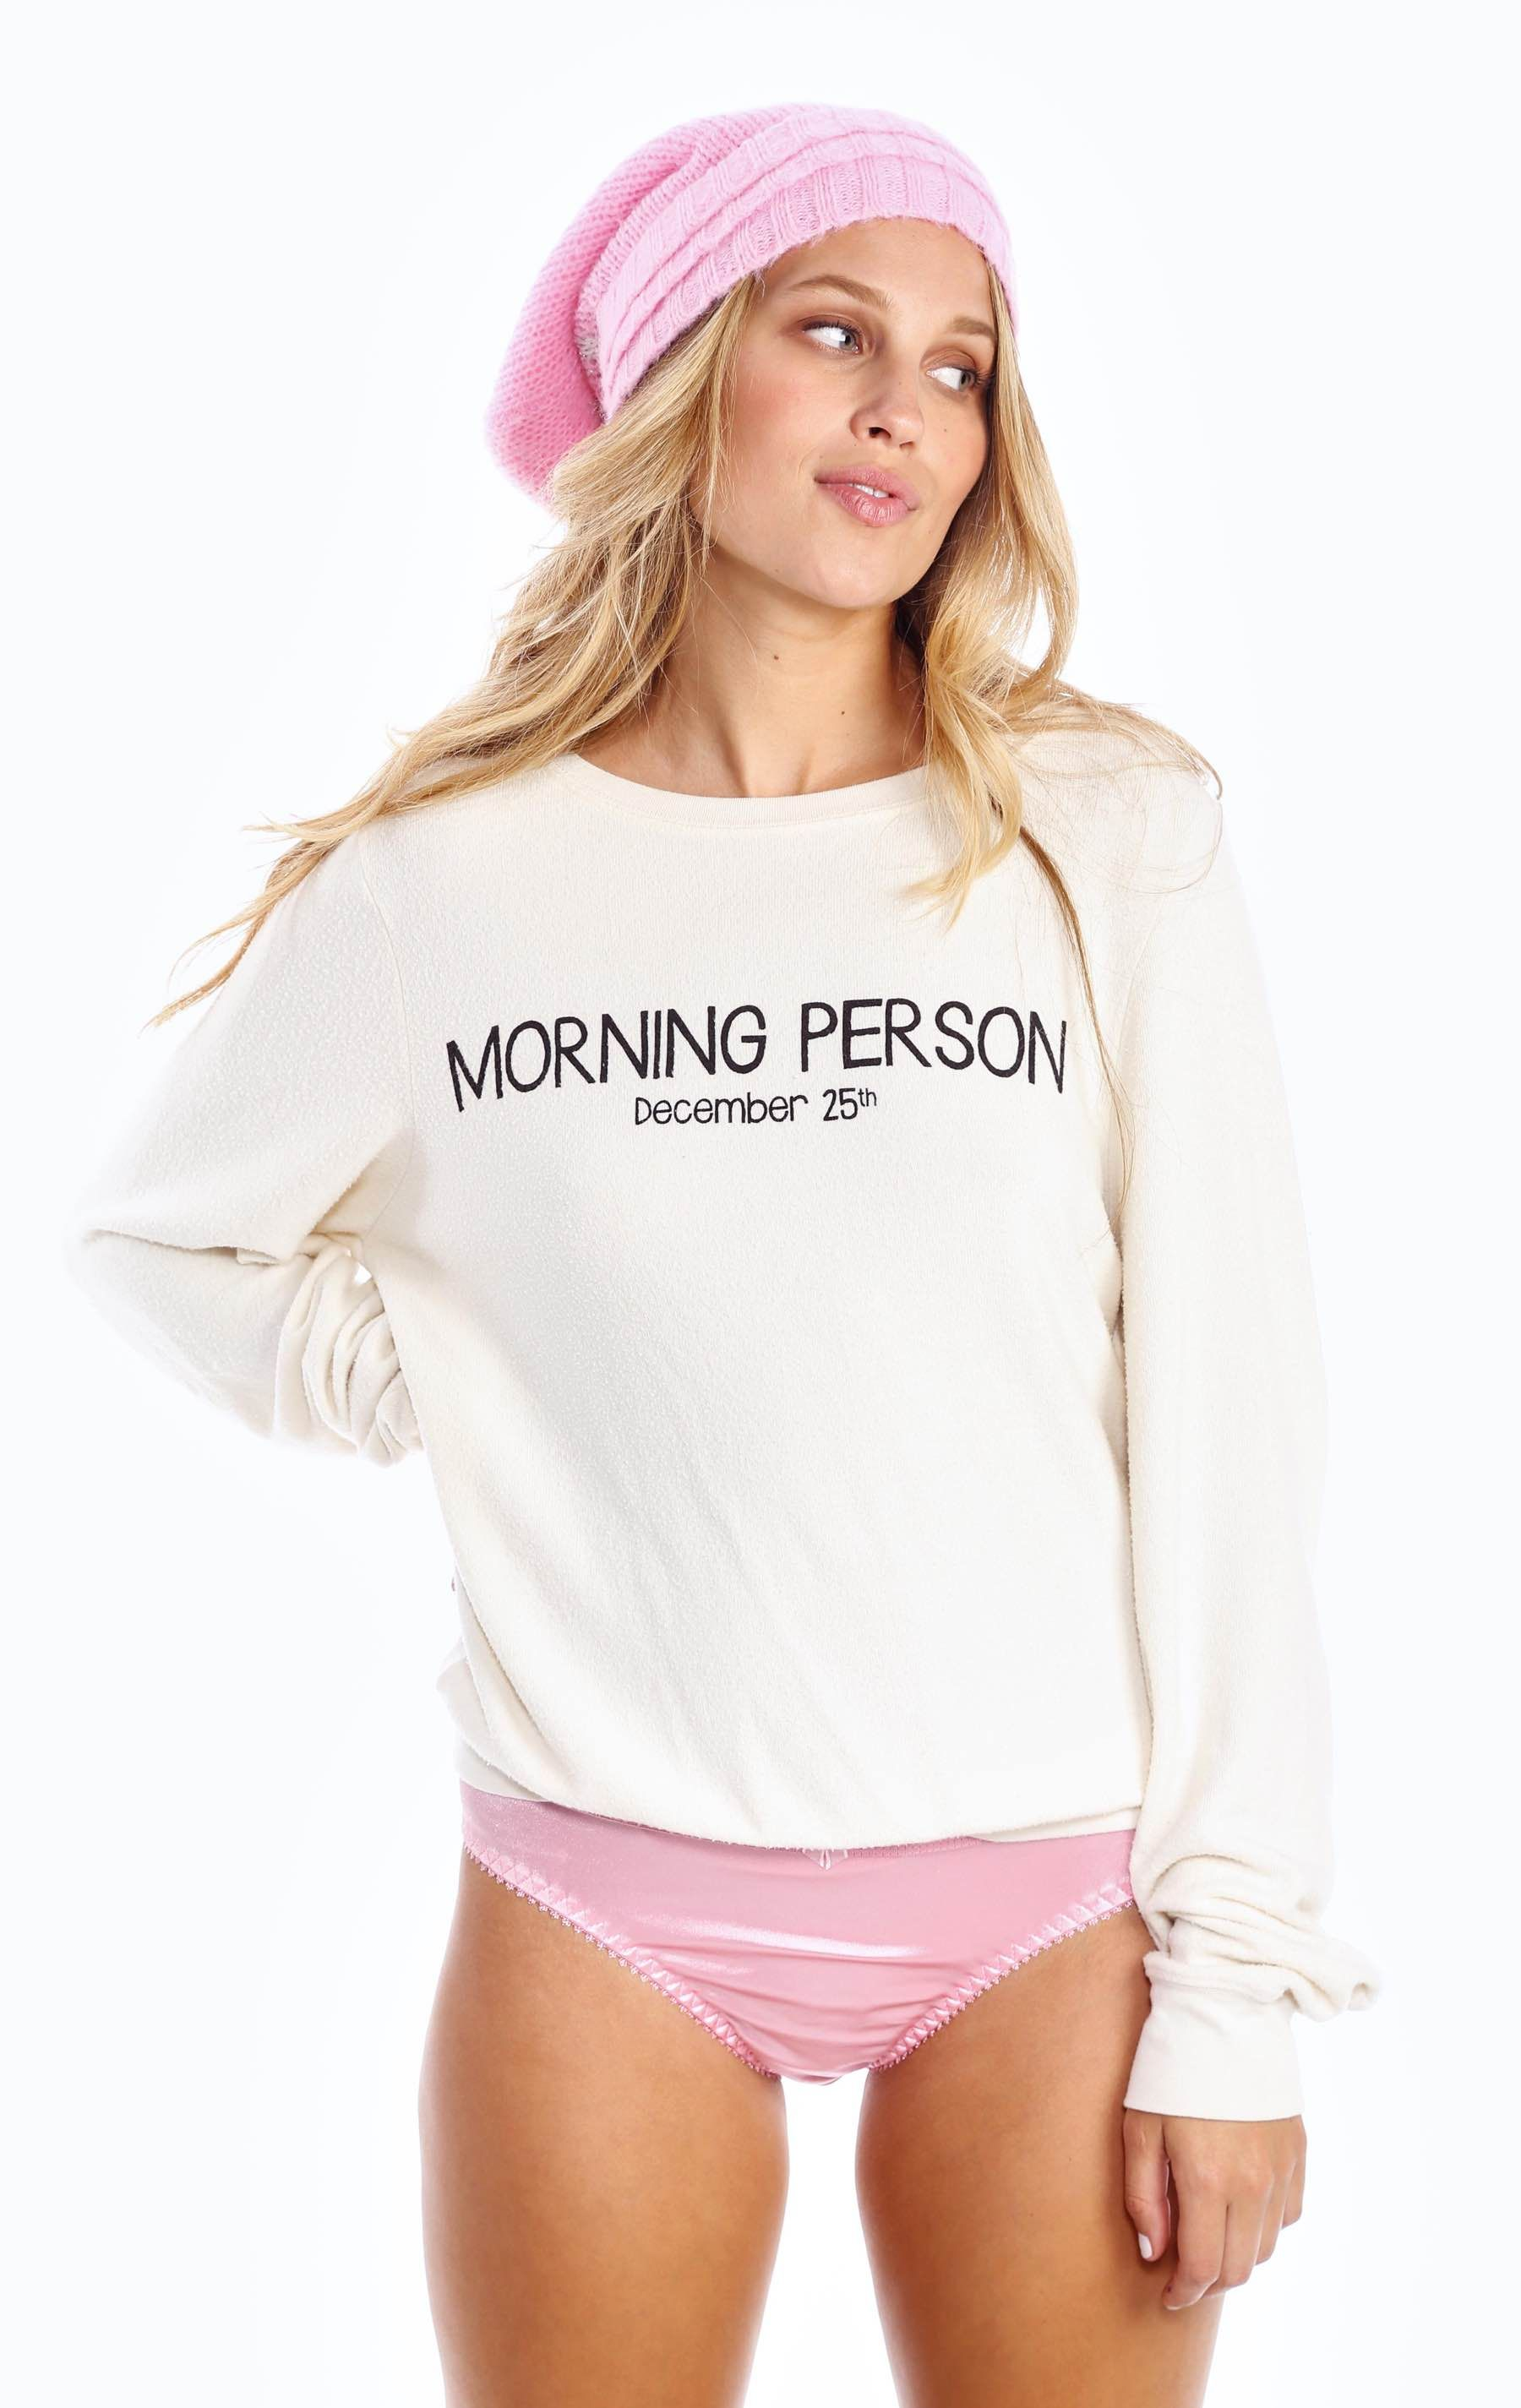 Wildfox Christmas Sweatshirt.Wildfox Holiday 15 Pink Christmas Sweatshirts Wildfox